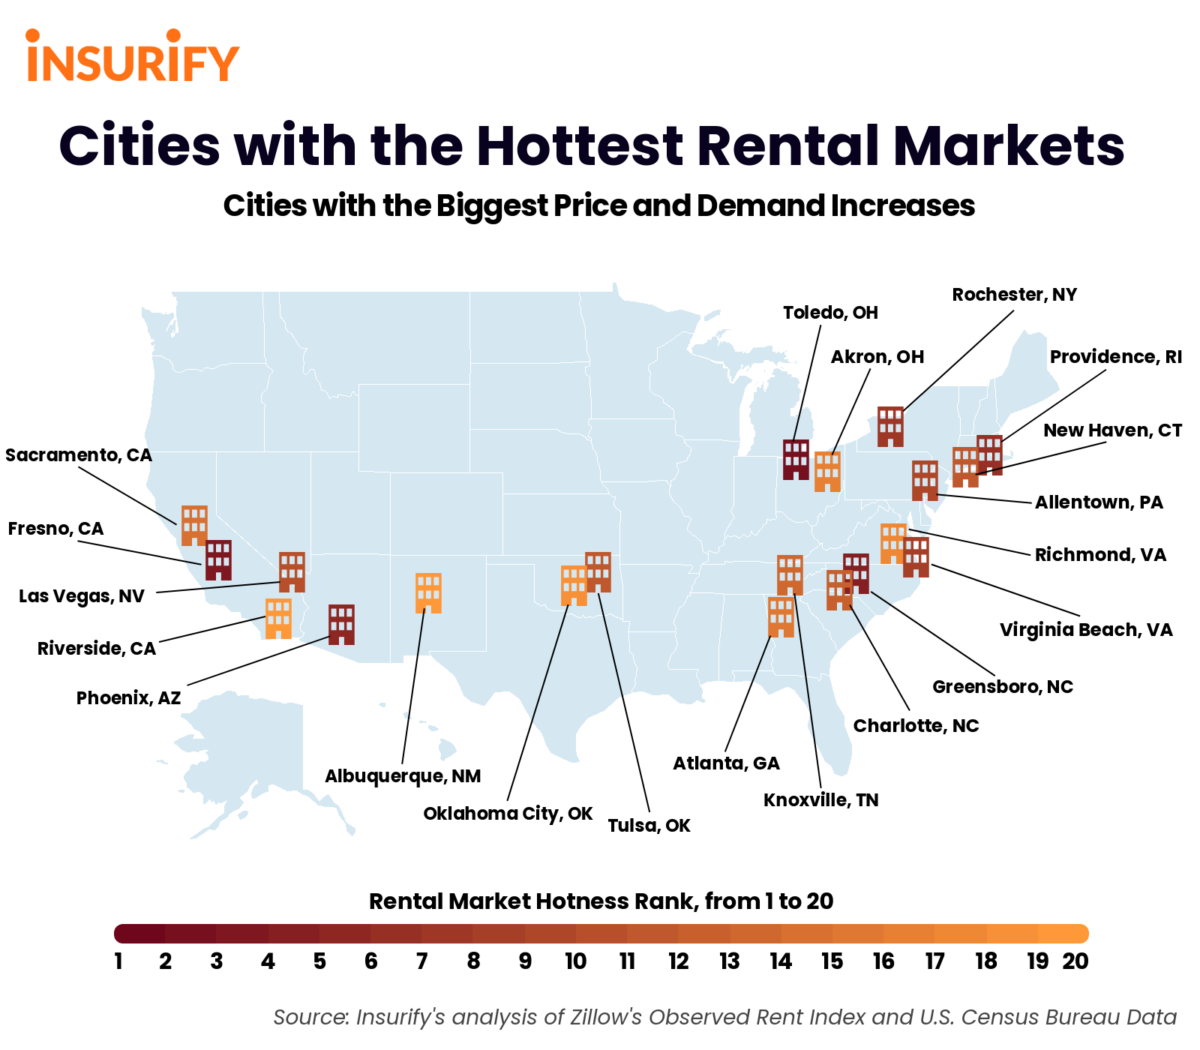 Map illustrating the 20 hottest rental markets in the United States in 2021